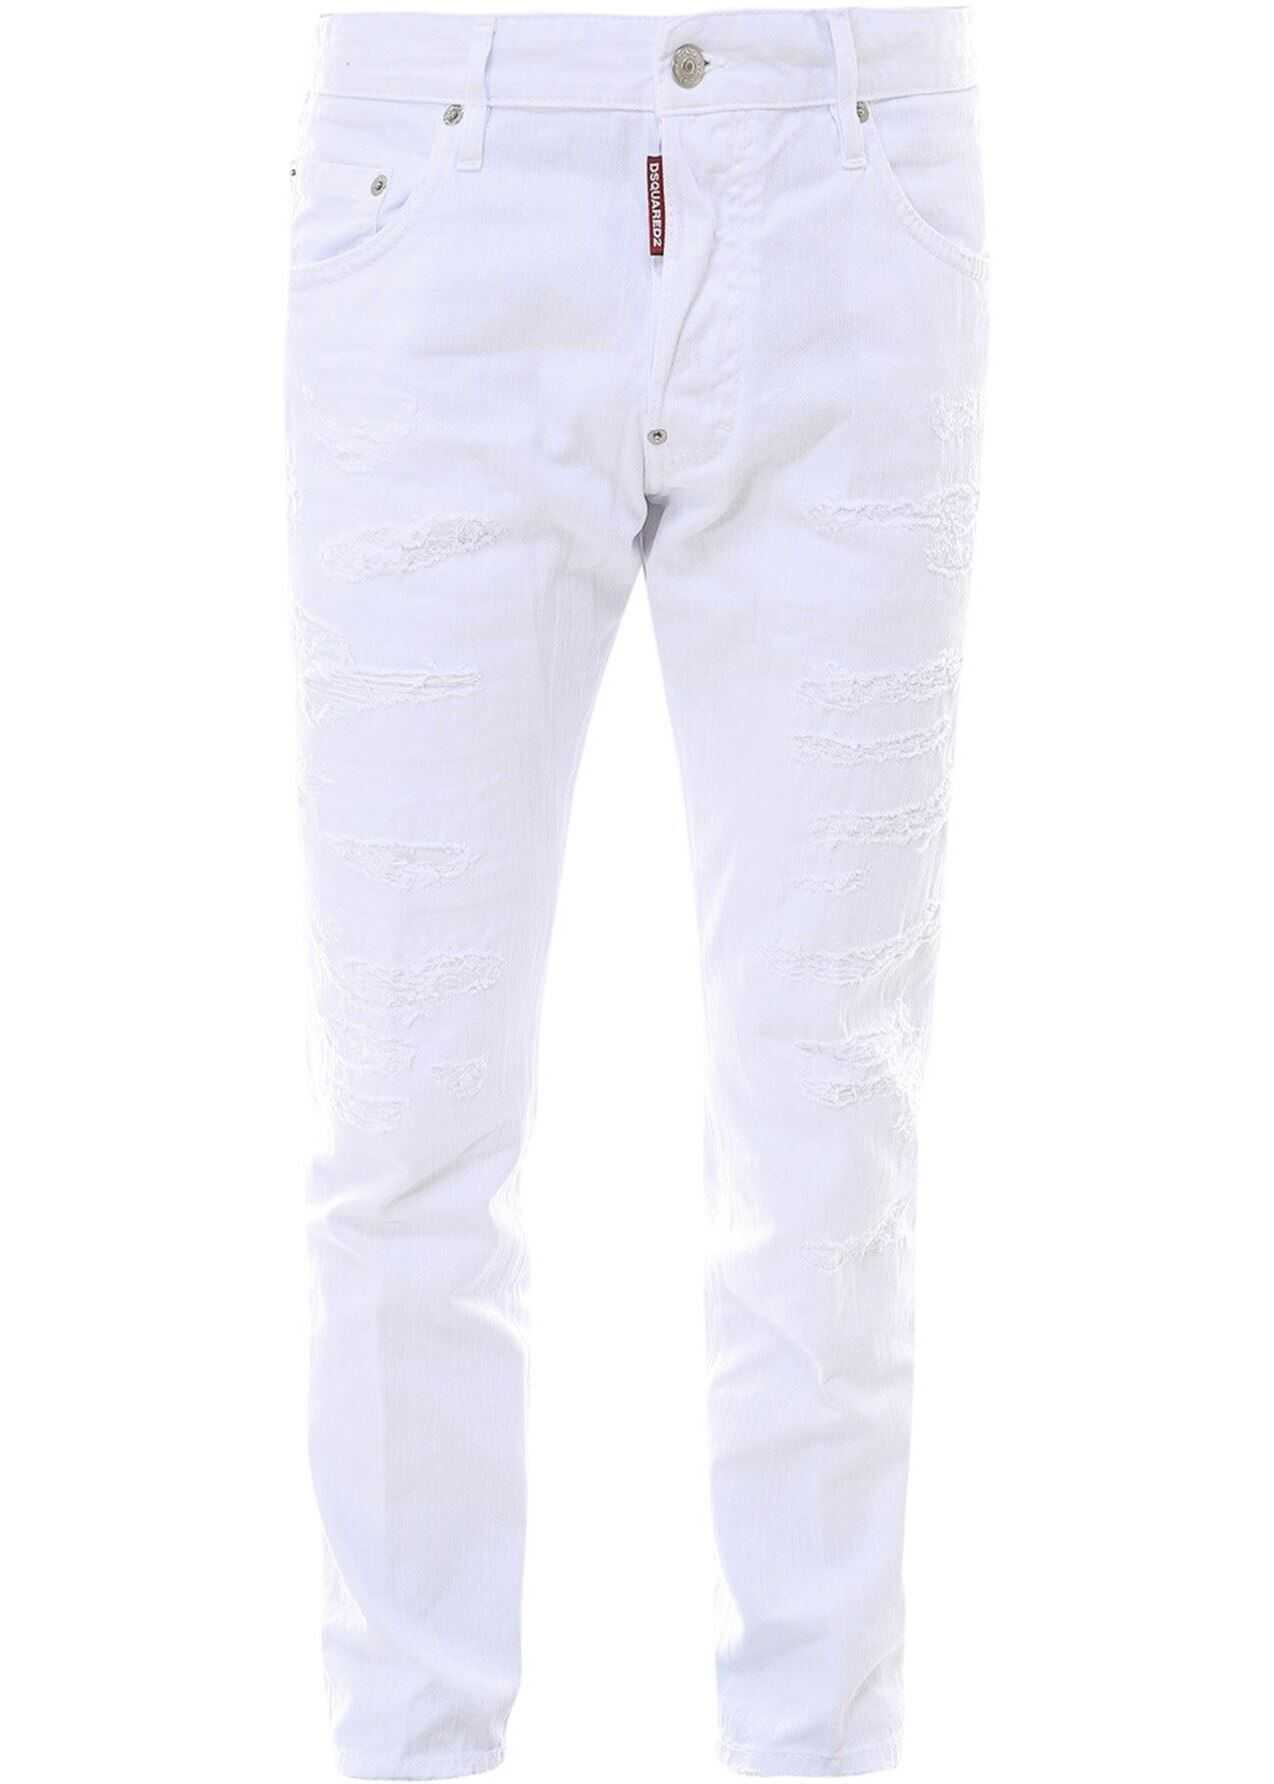 DSQUARED2 Skater Jeans In White White imagine